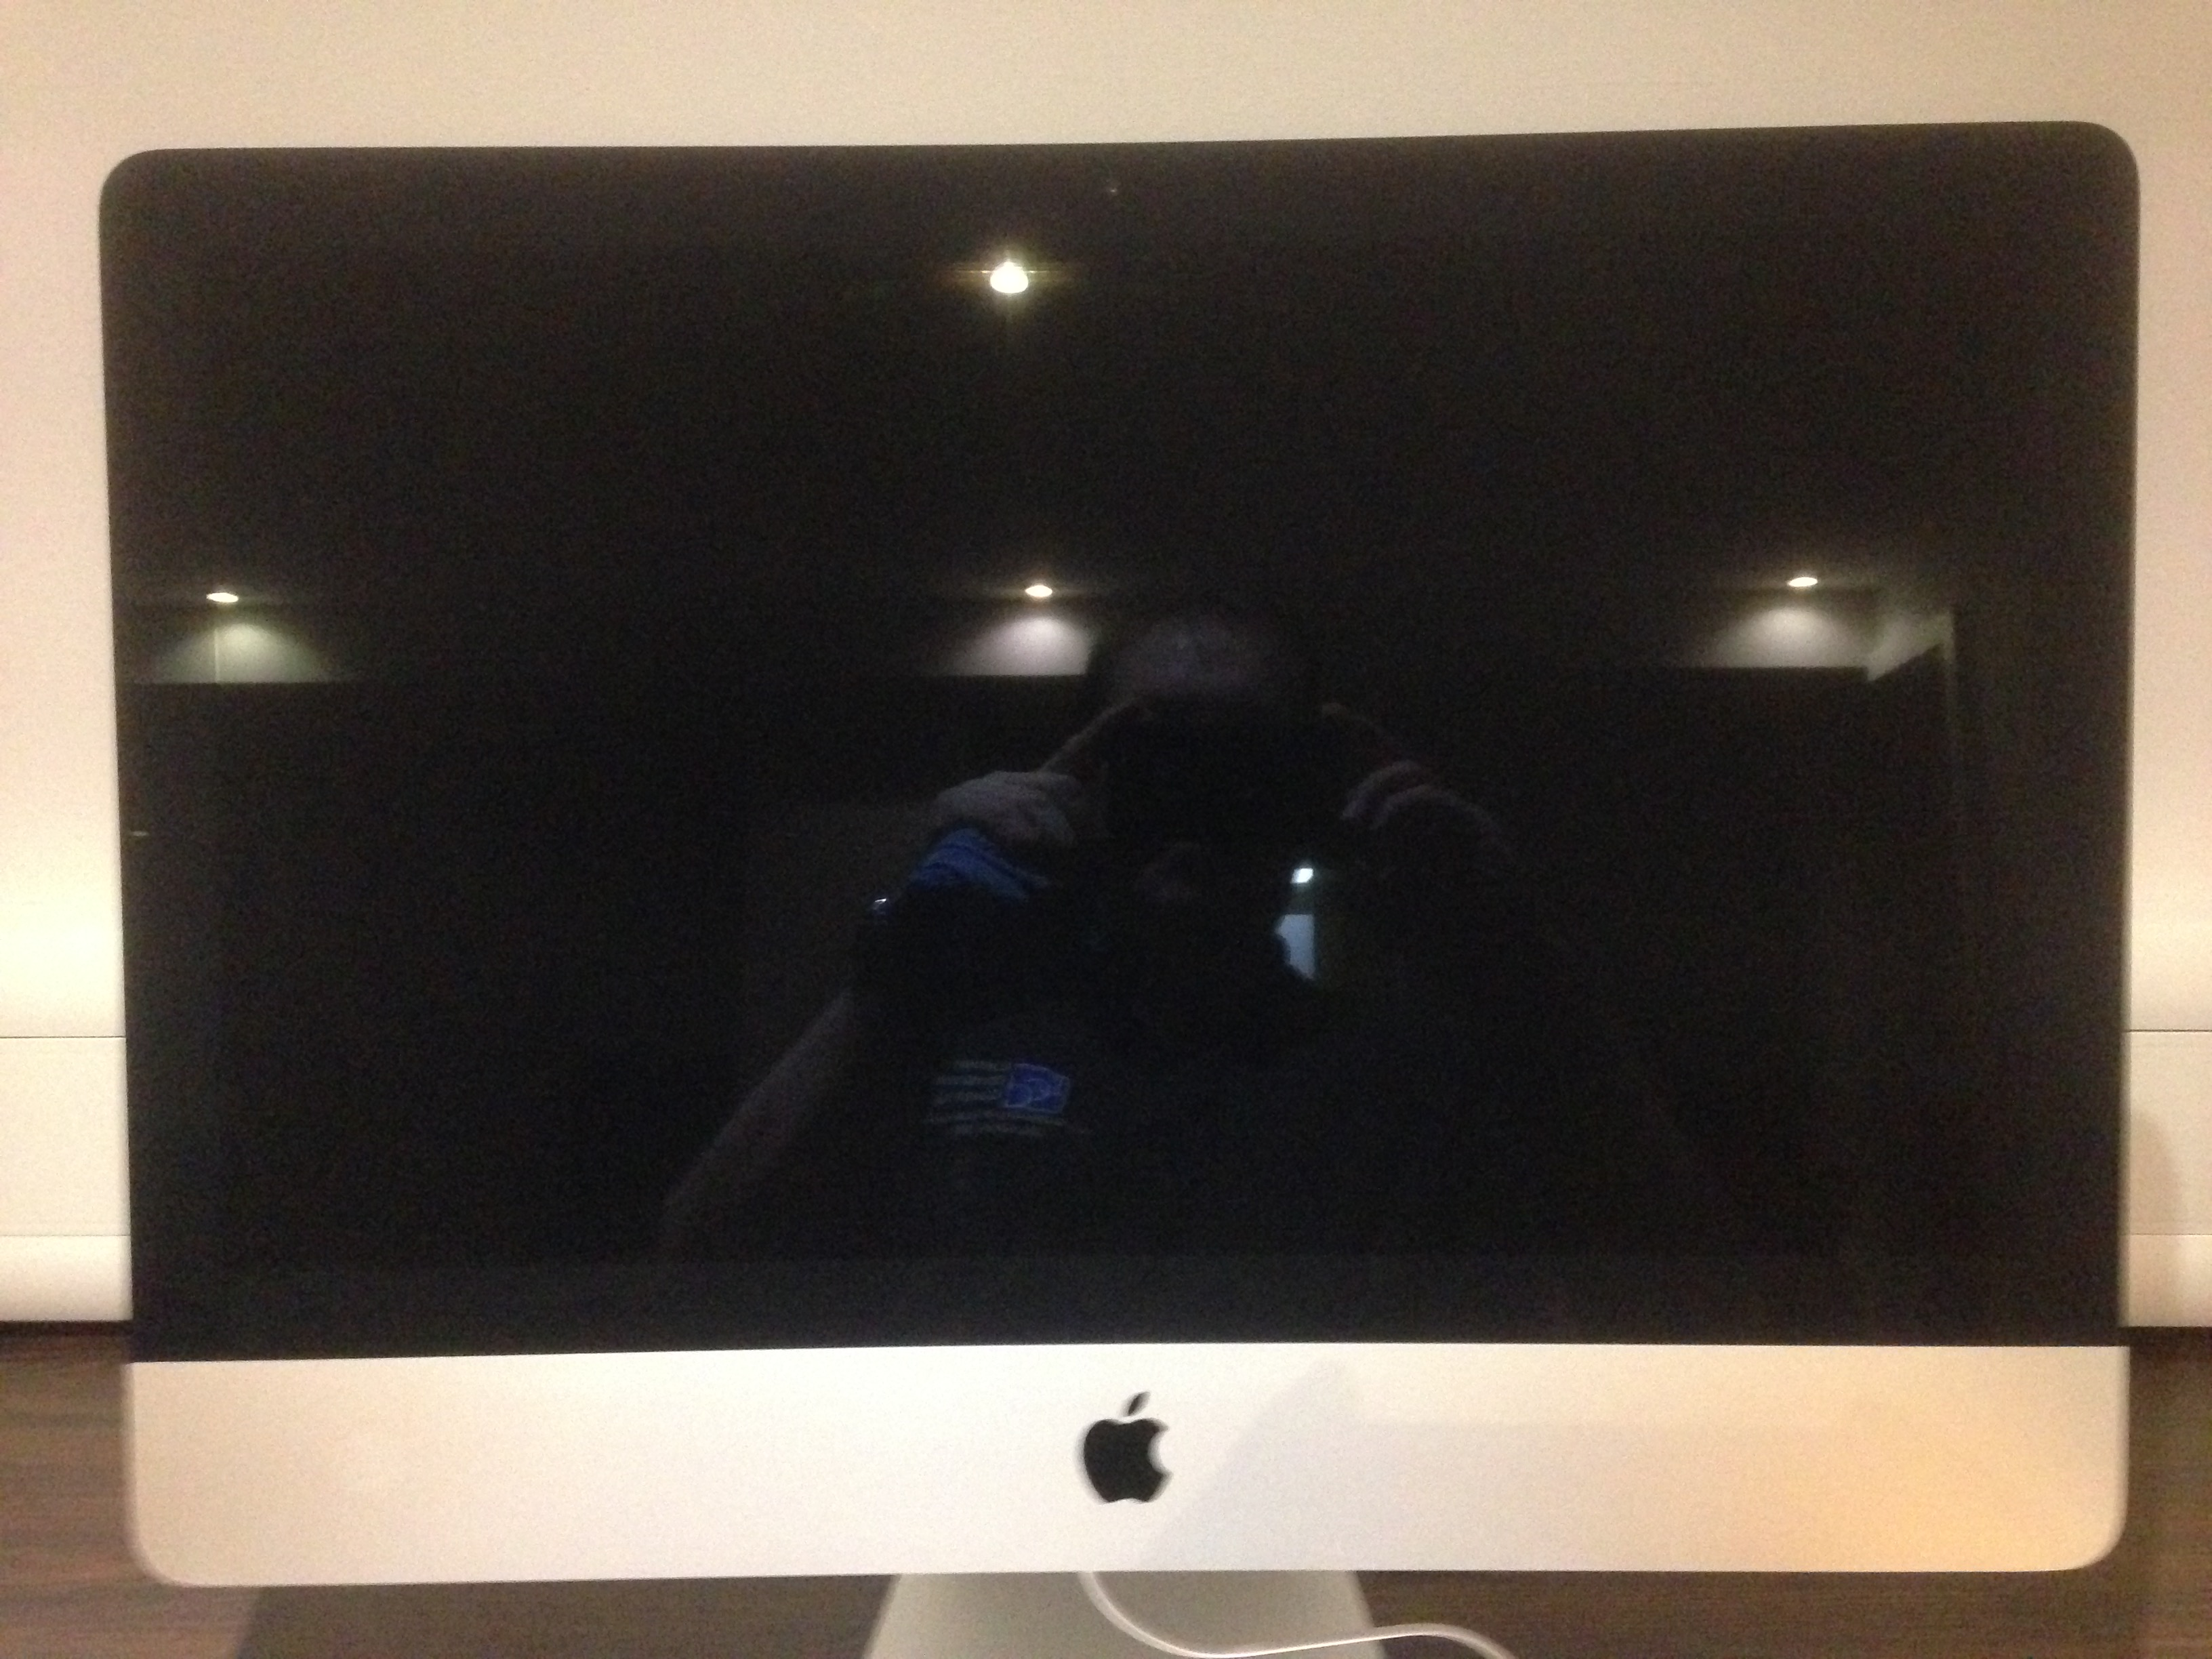 Clean IMac After Computer Cleaning Service